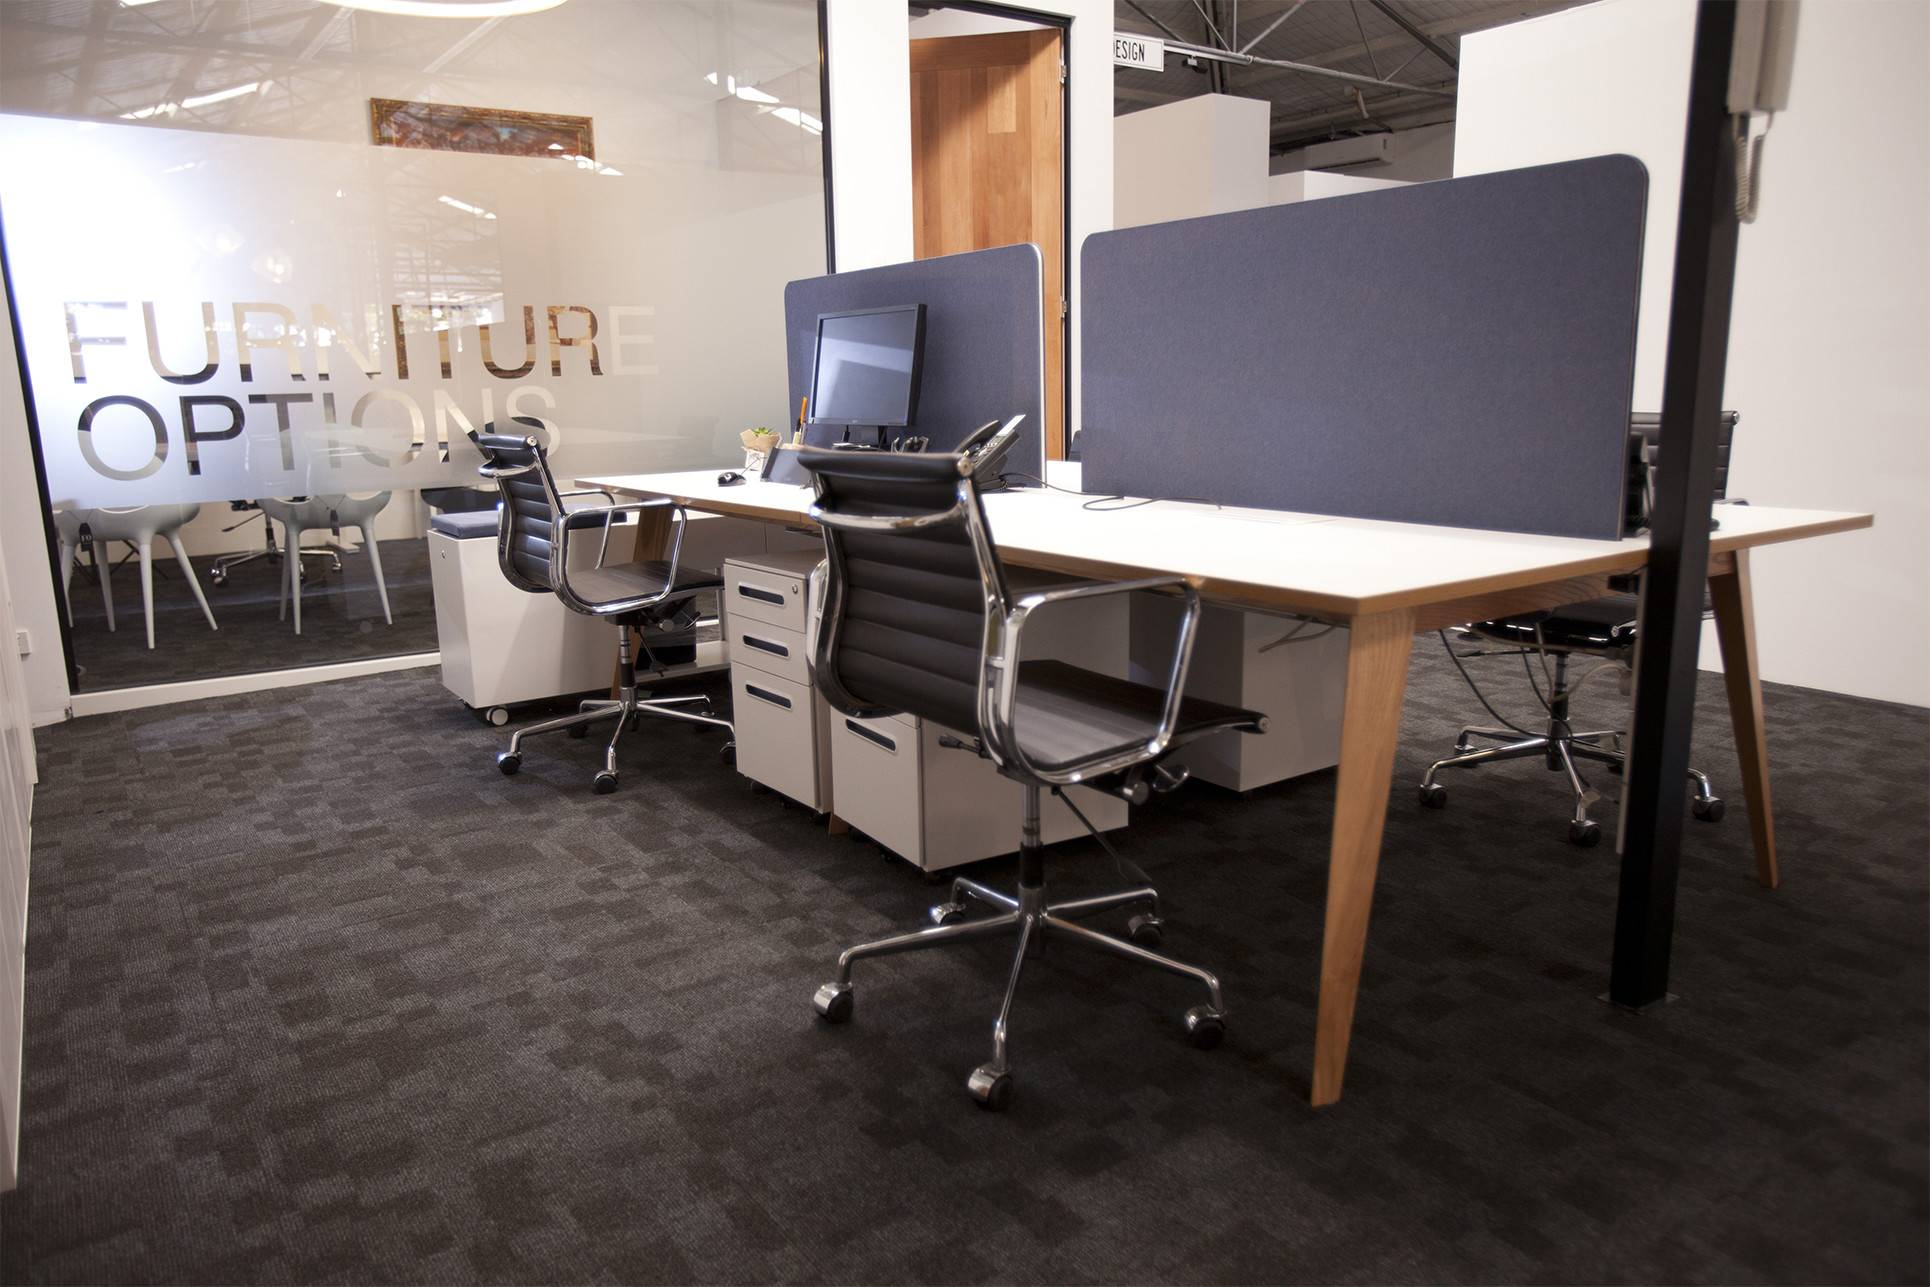 Aberdeen Showroom Offices Furniture Options